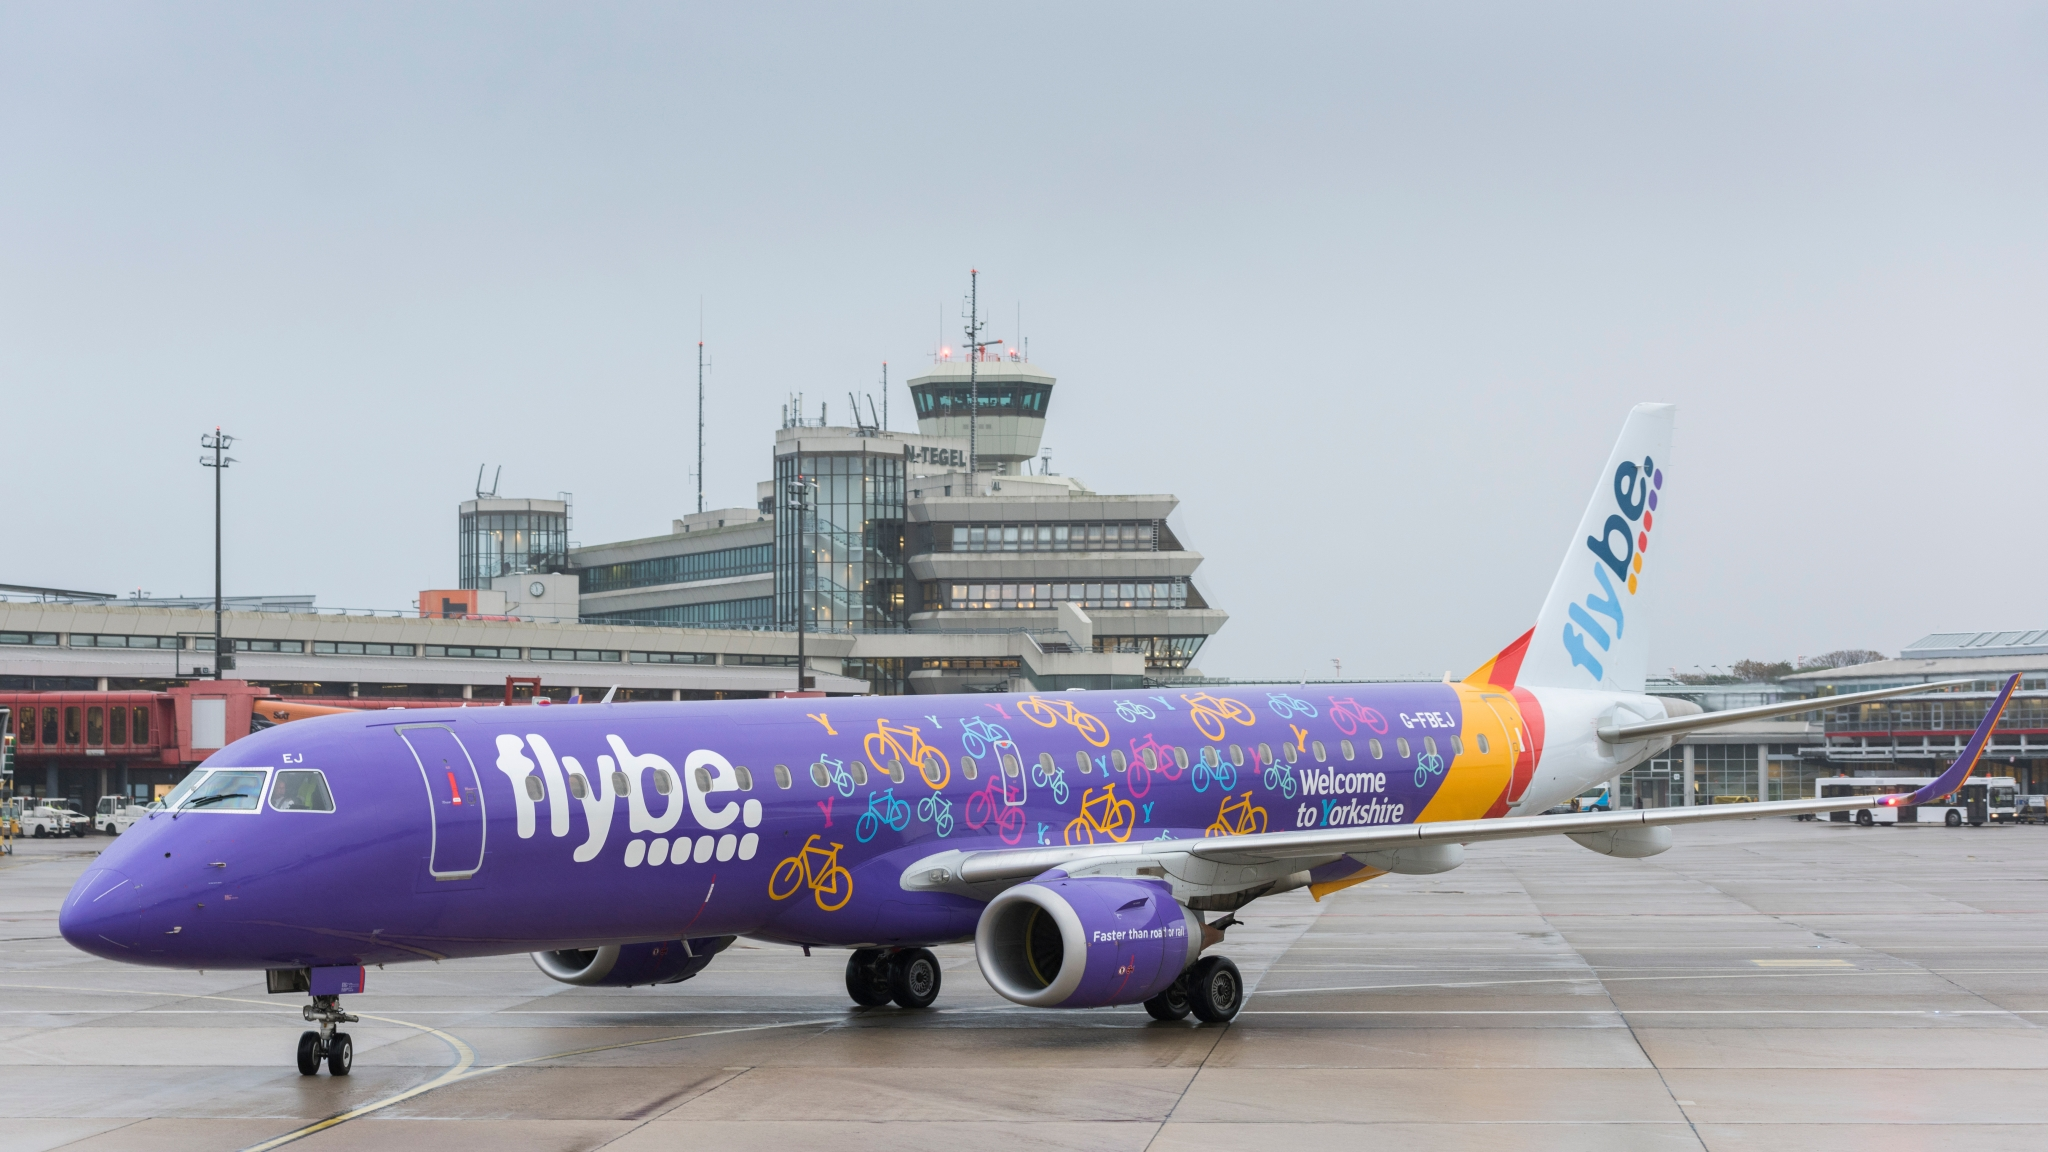 B&H Worldwide, the world's best-in-class aerospace logistics supplier, has extended its relationship to manage Flybe's time critical and heavyweight inbound and outbound aerospace logistics